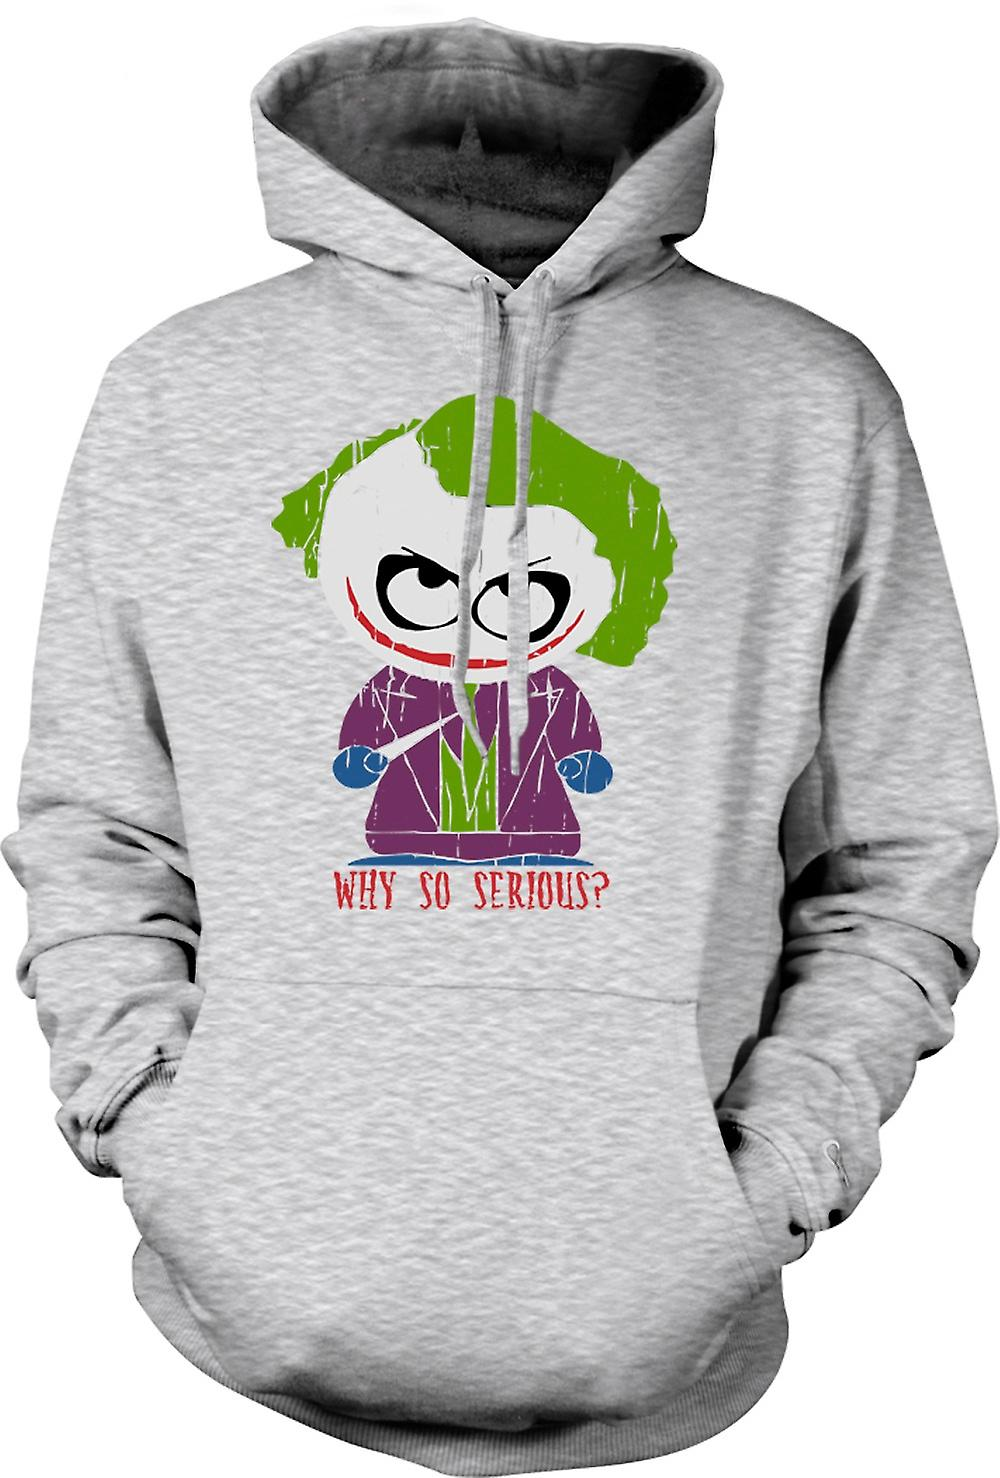 Mens Hoodie - Joker mignon - Why So Serious